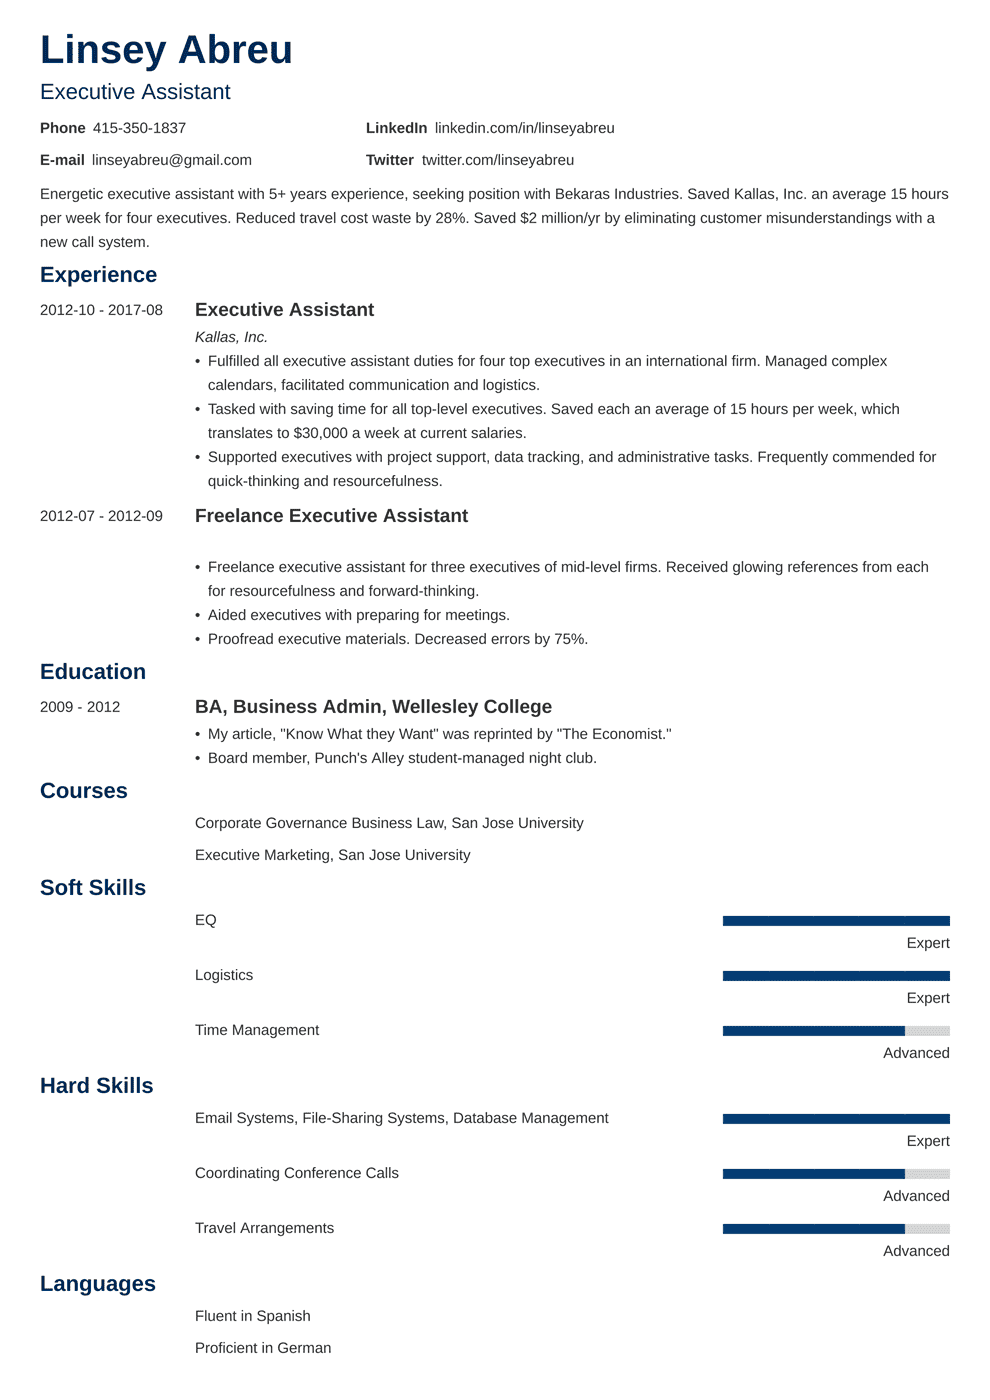 Executive Assistant Resume: Sample & Complete Guide [20+